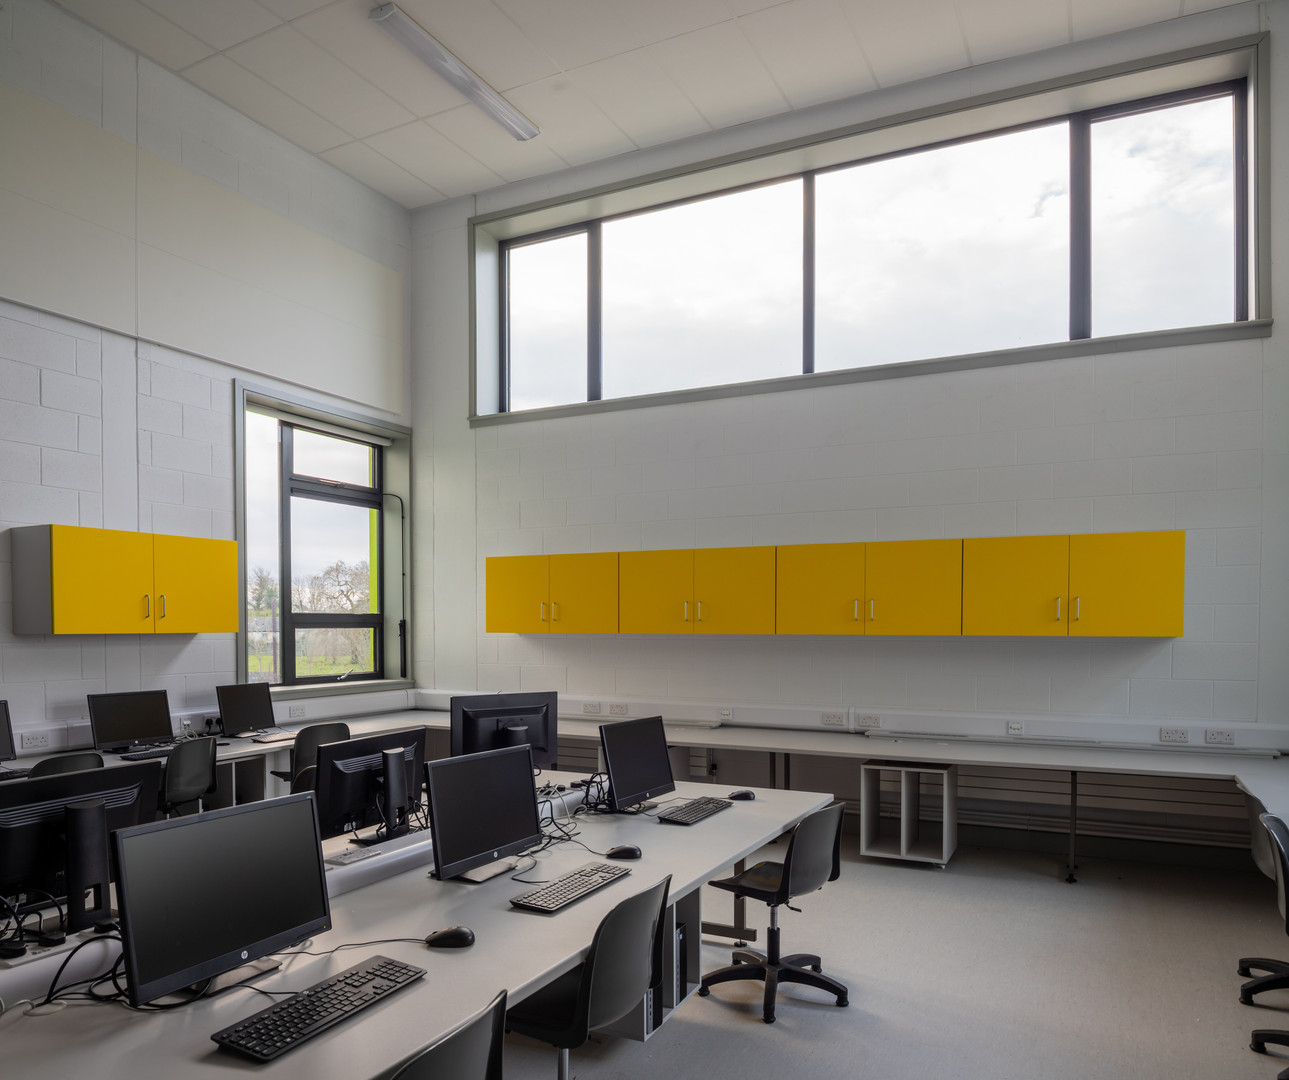 Computer room with desks, computers, white block walls and yellow cupboards in Colaiste Iosaef, Kilmallock, Limerick